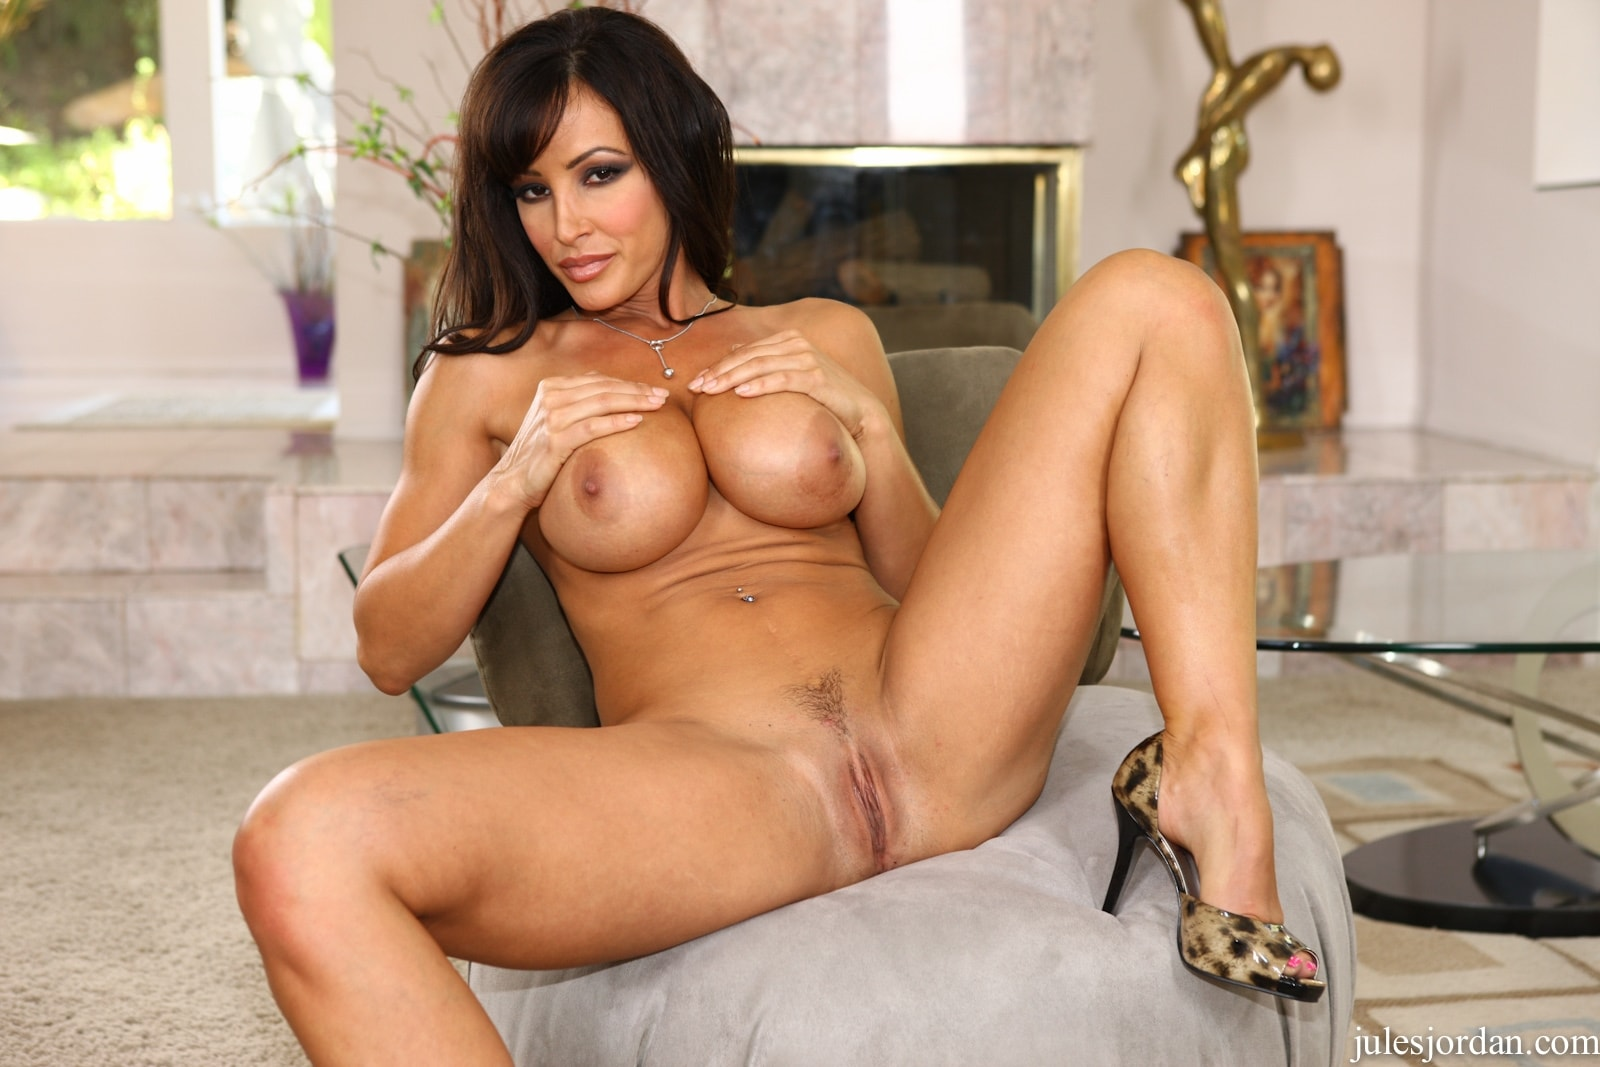 These Lesbian Beauties Sinn Sage And Lisa Ann Pose Nude And Demonstrate Hot Sex Desire